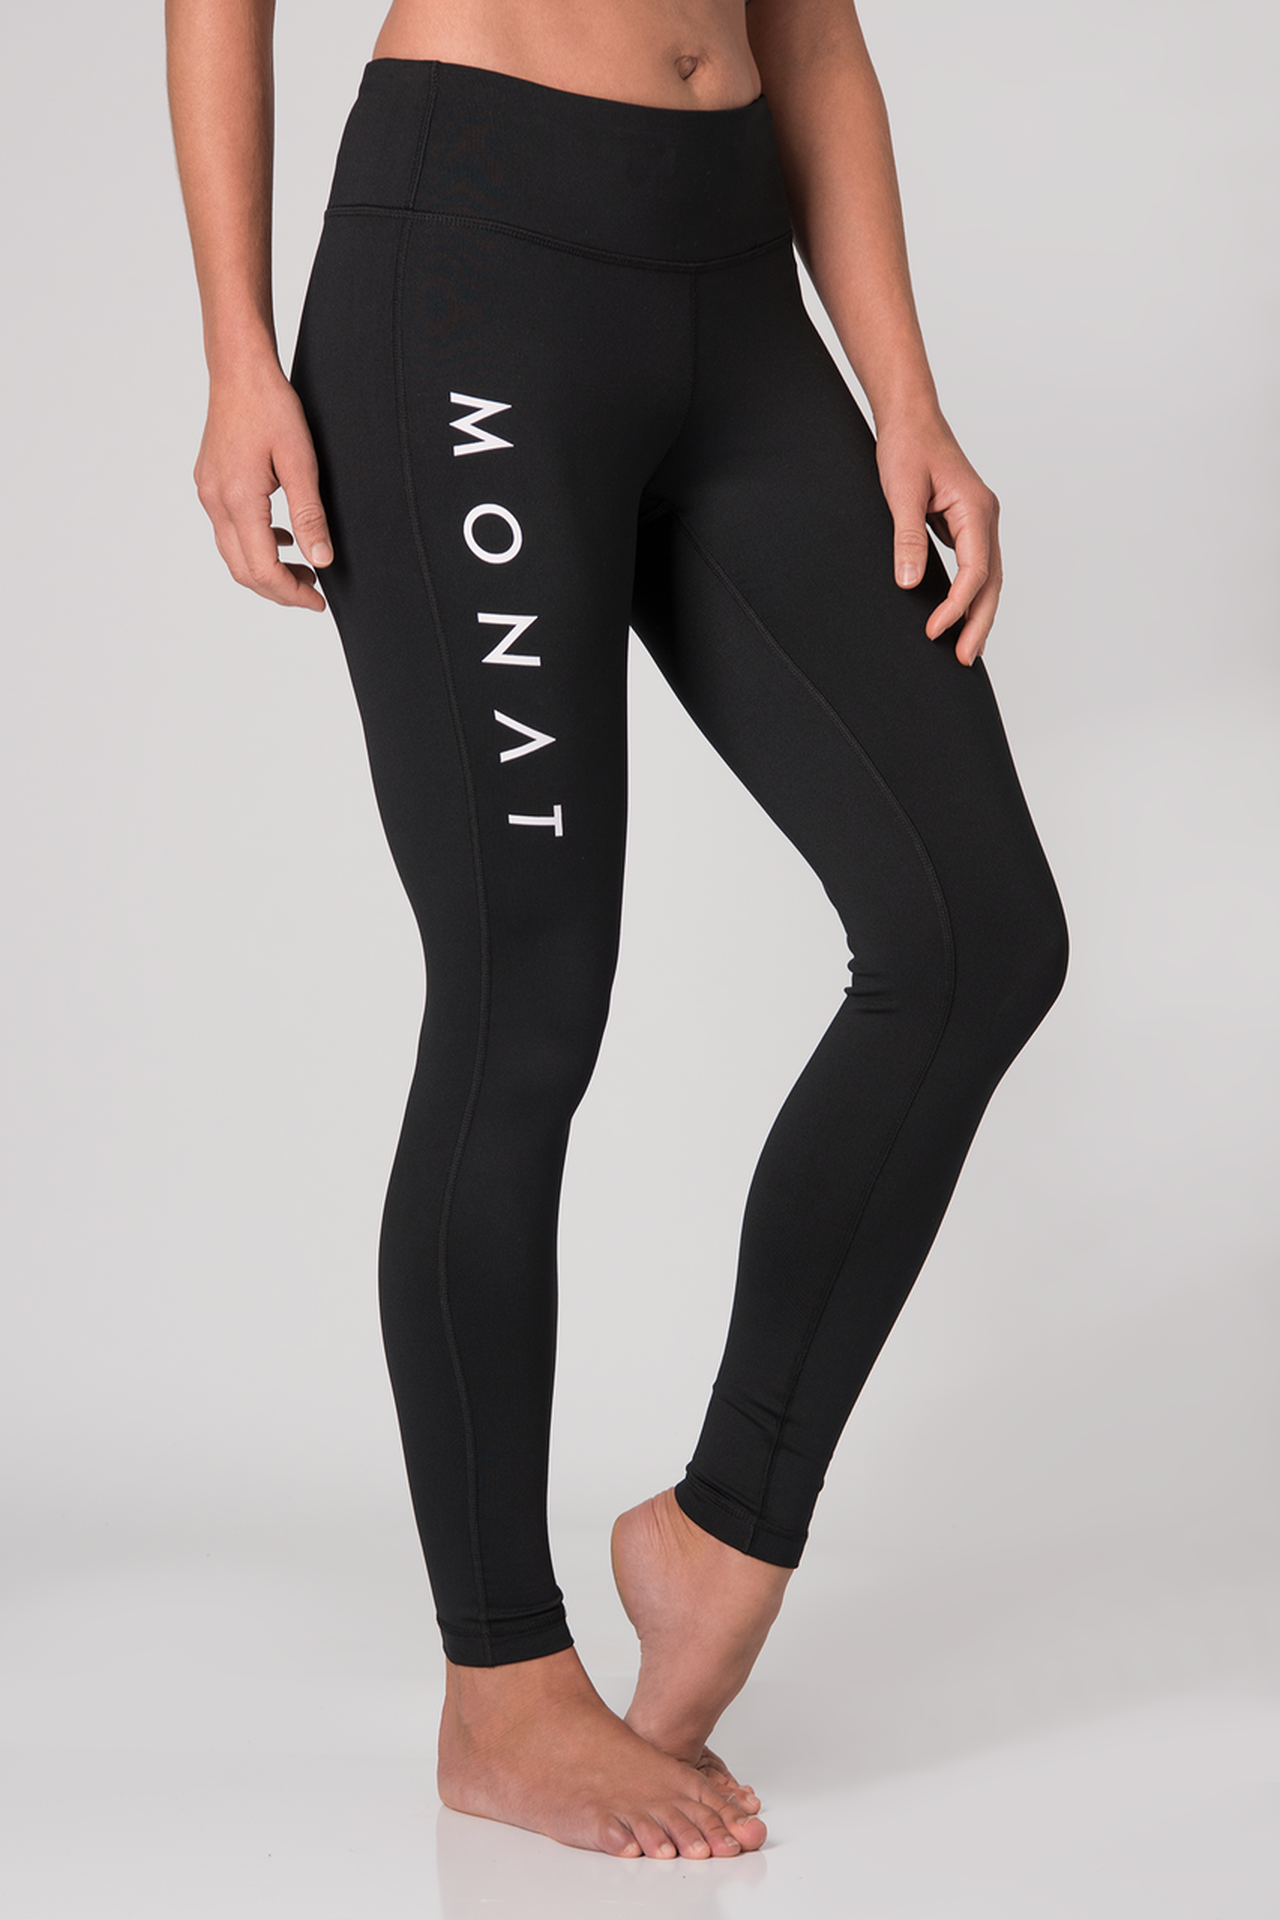 Ladies Performance Legging.